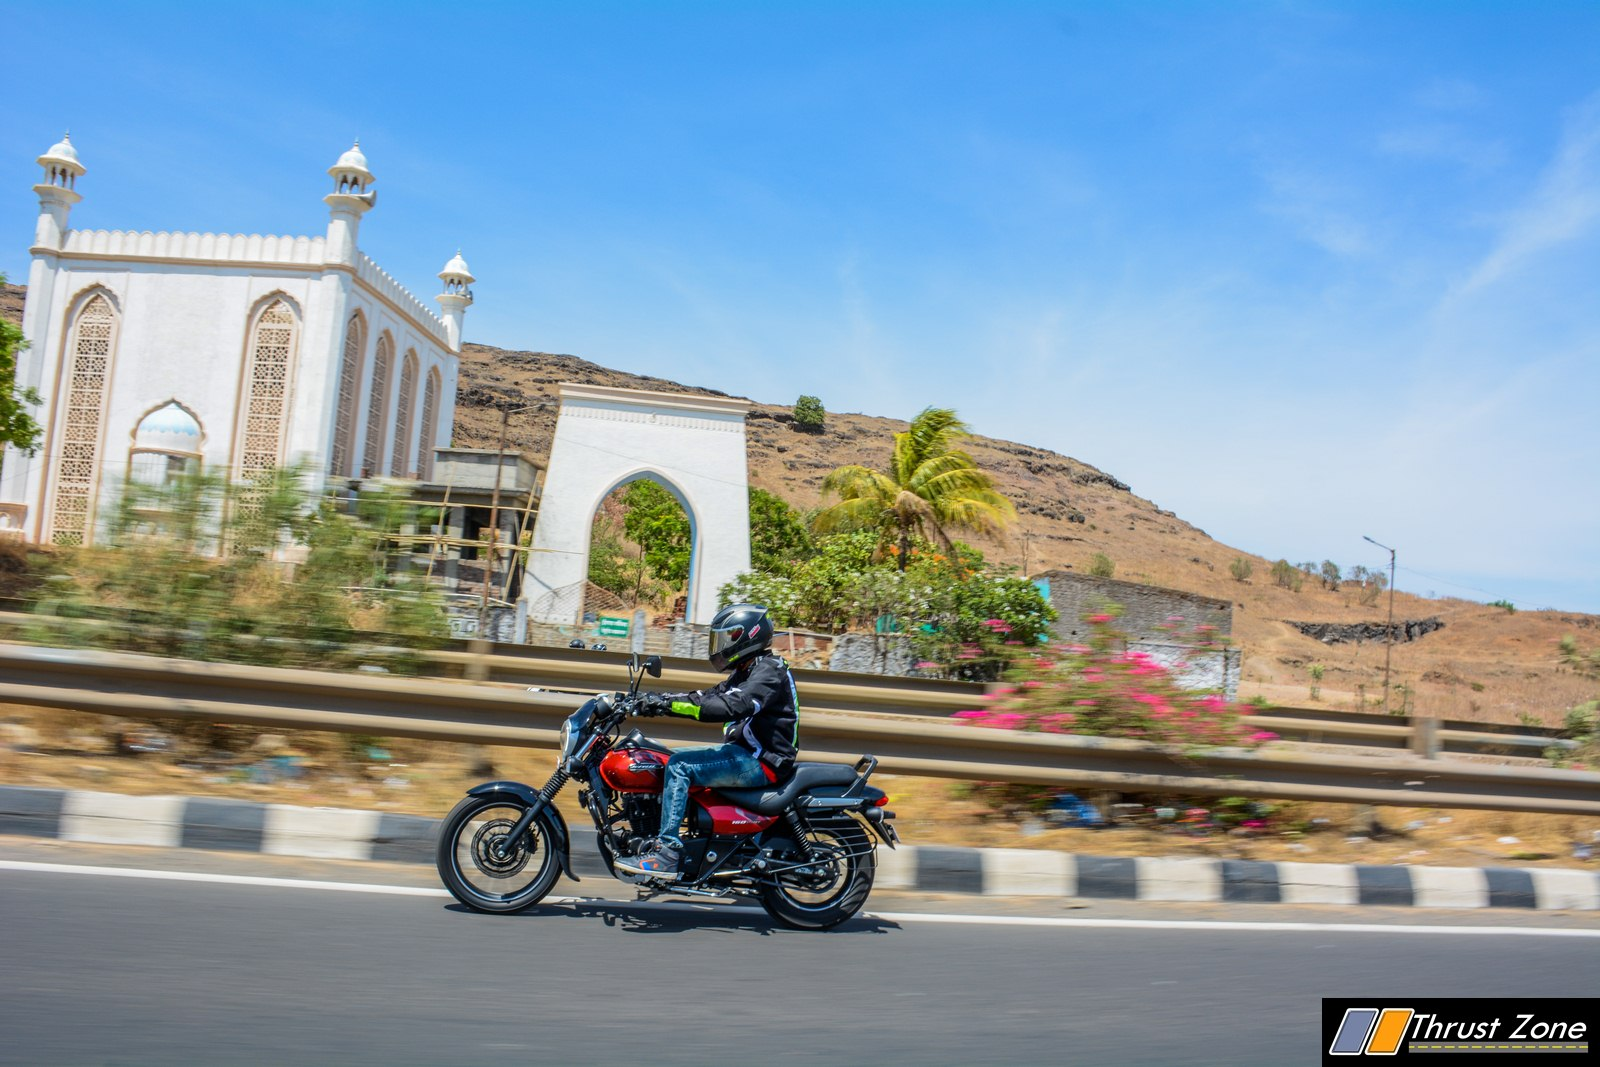 https://www.thrustzone.com/wp-content/uploads/2019/07/2019-bajaj-avenger-160-bs4-review-1.jpg